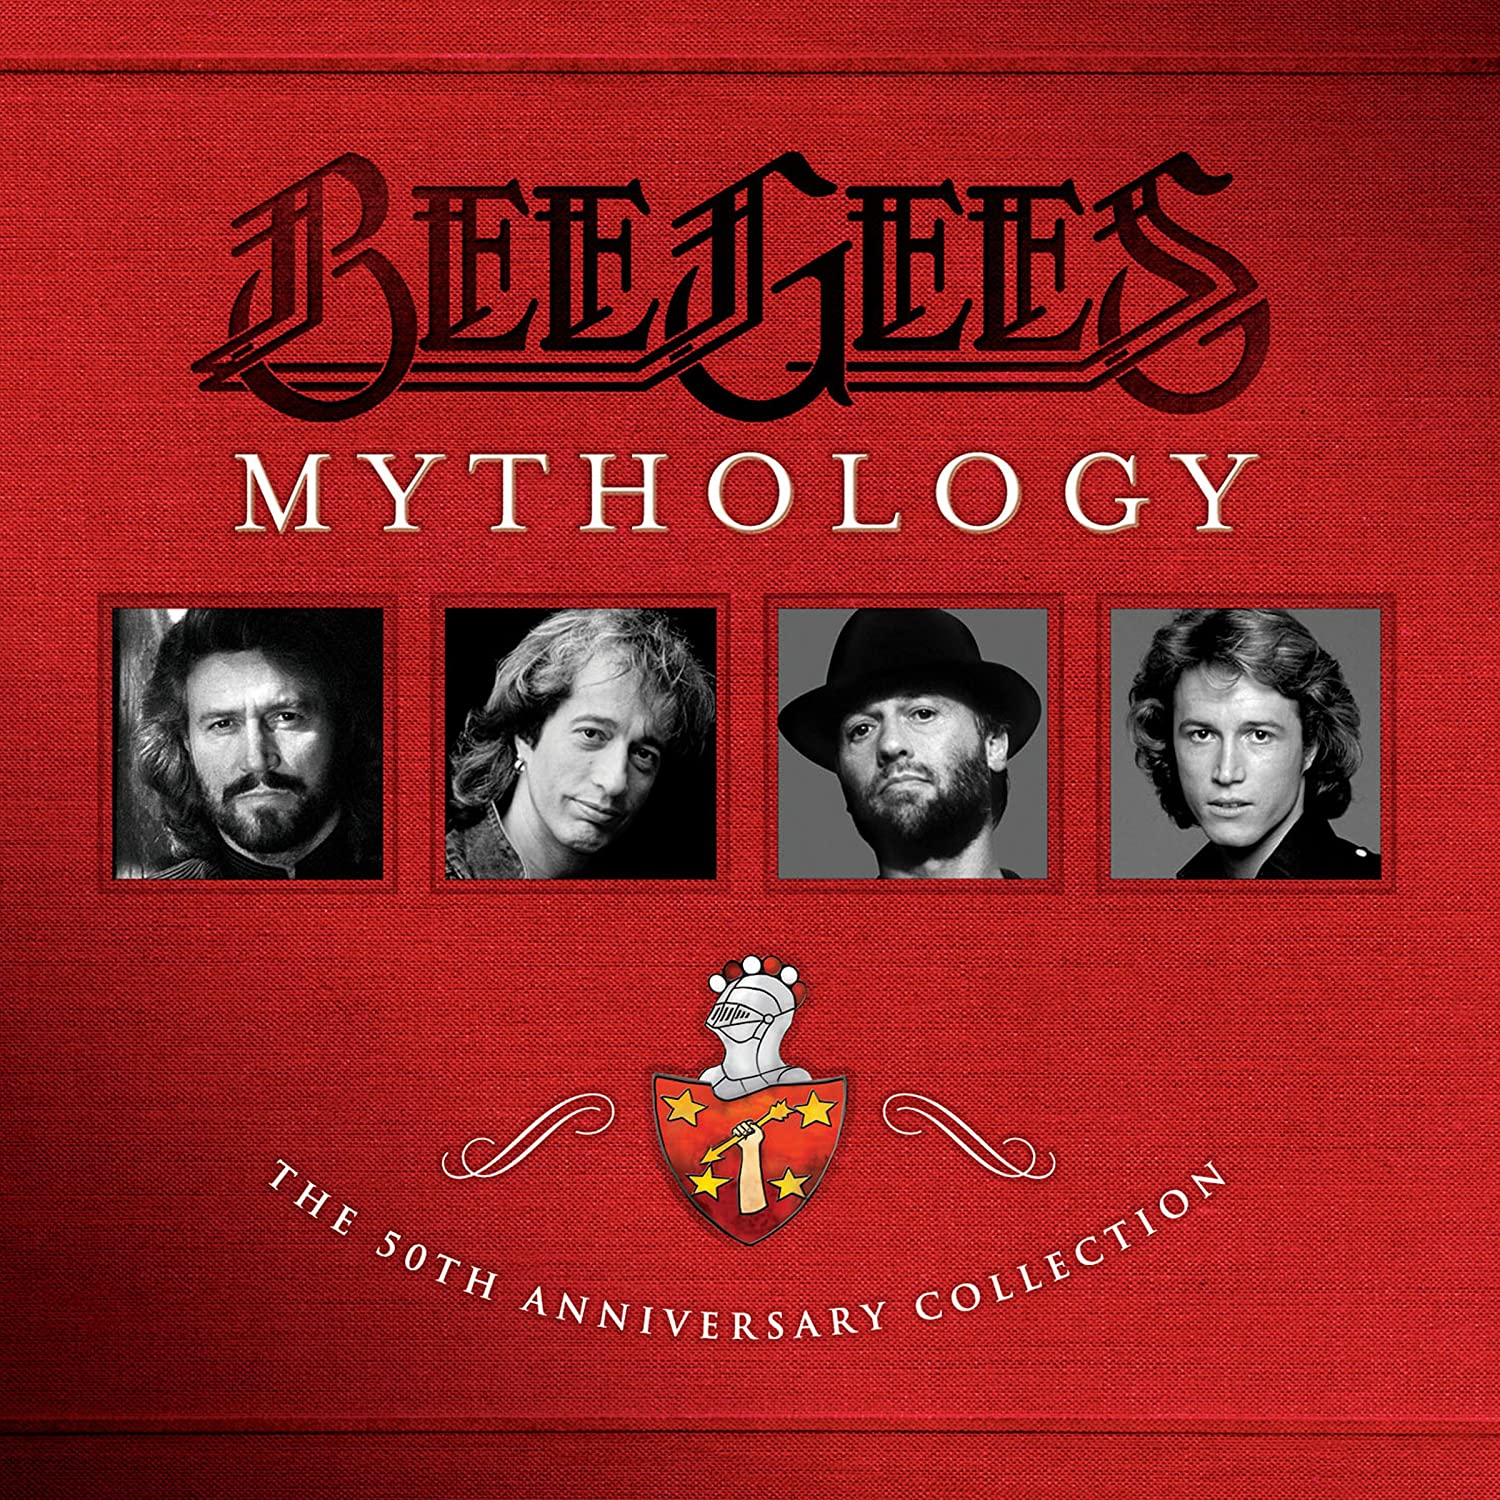 bee gees 50th anniversary